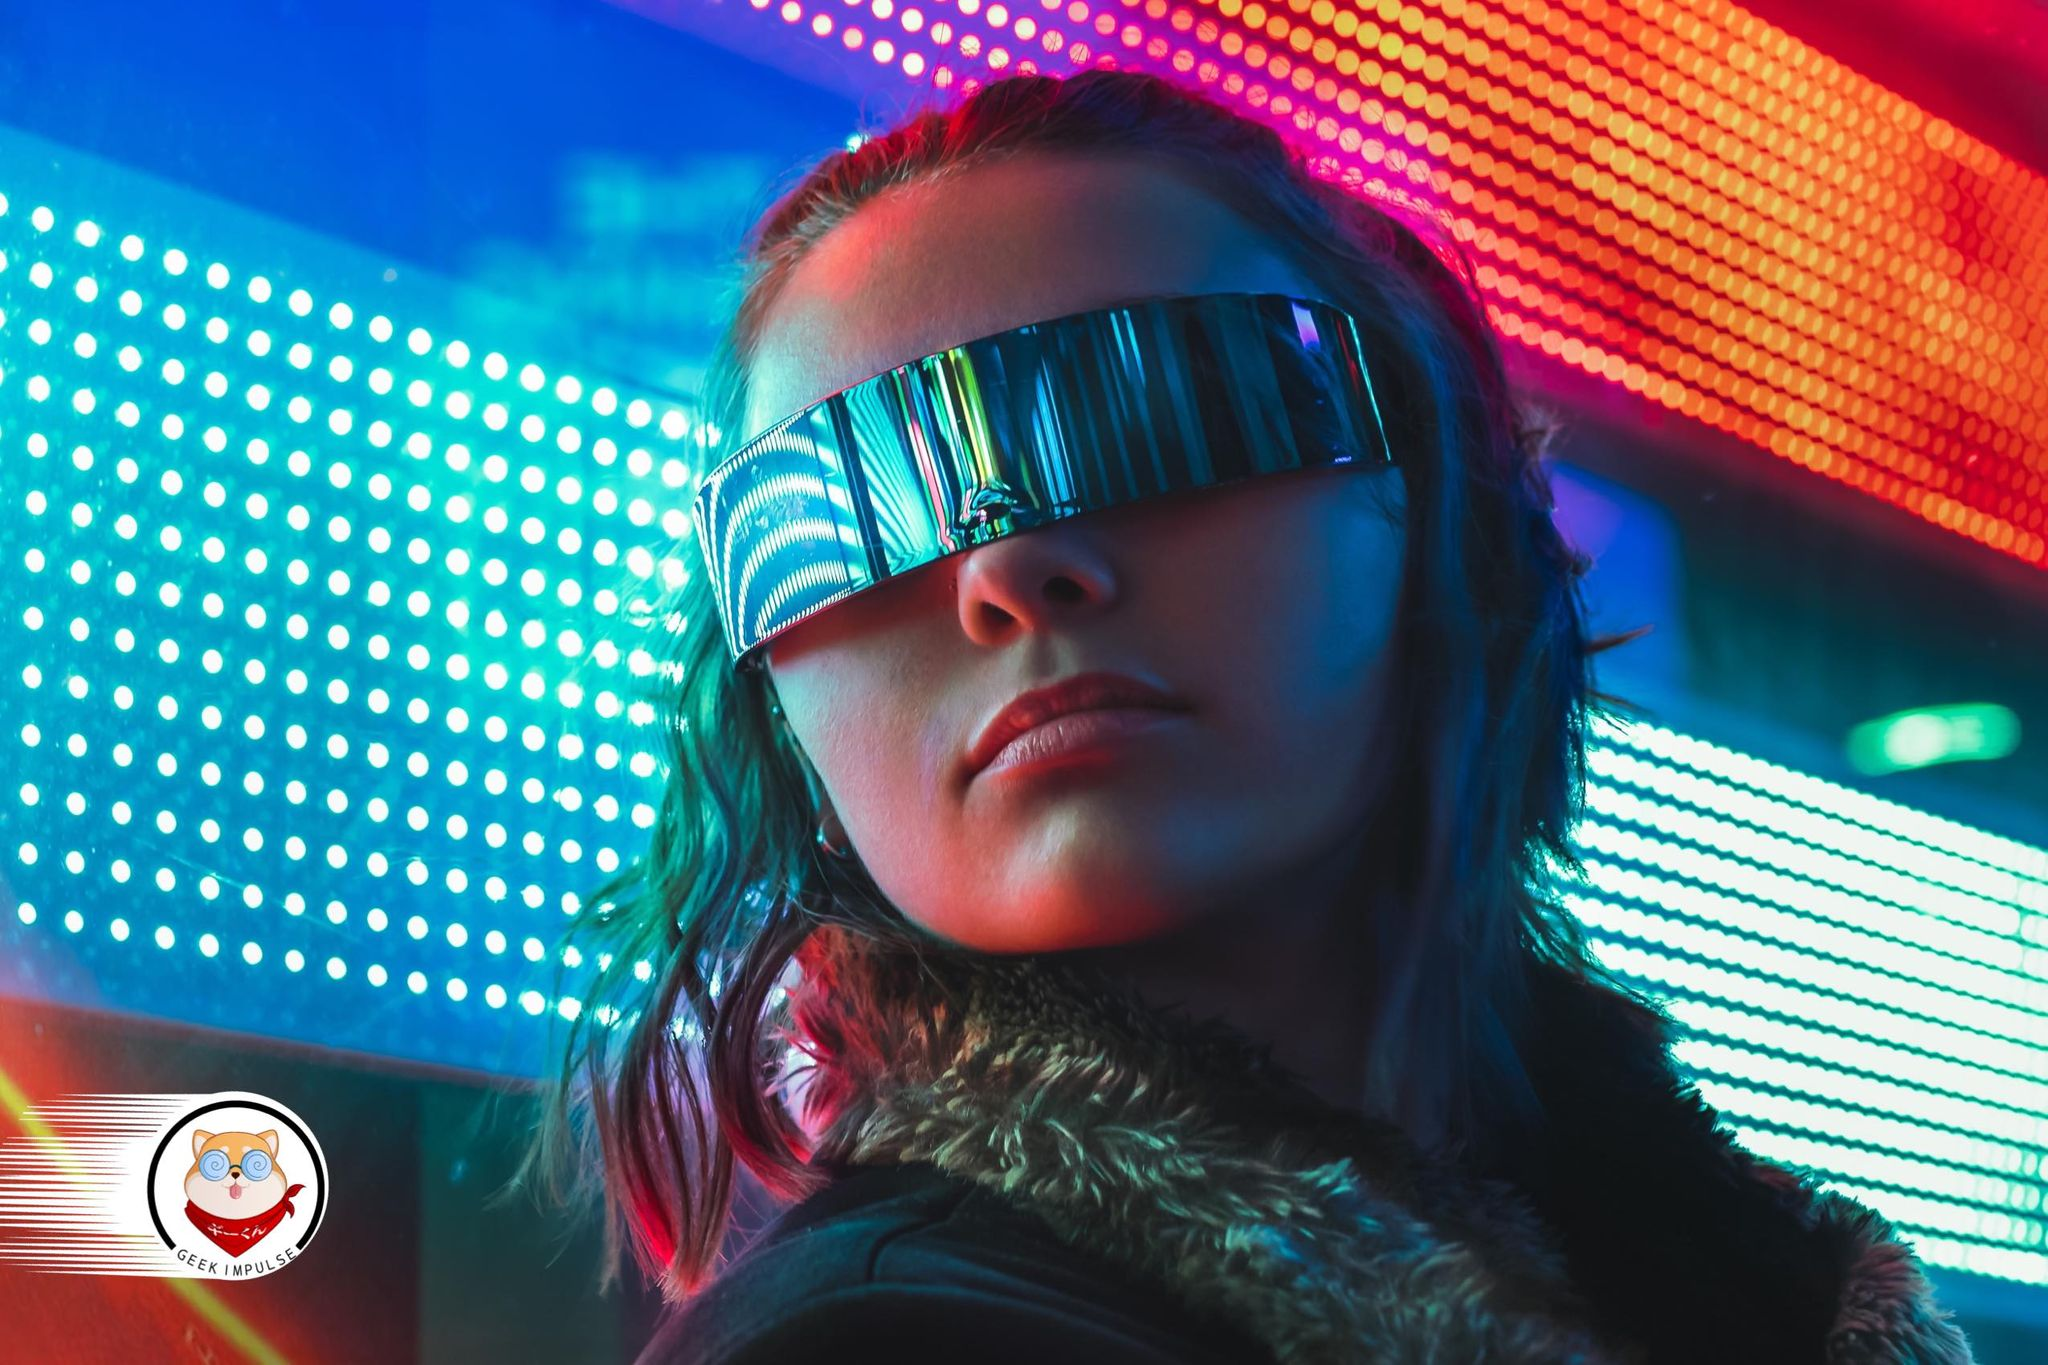 Cyberpunk 2077, News, Reviews, What The Hell is Going on